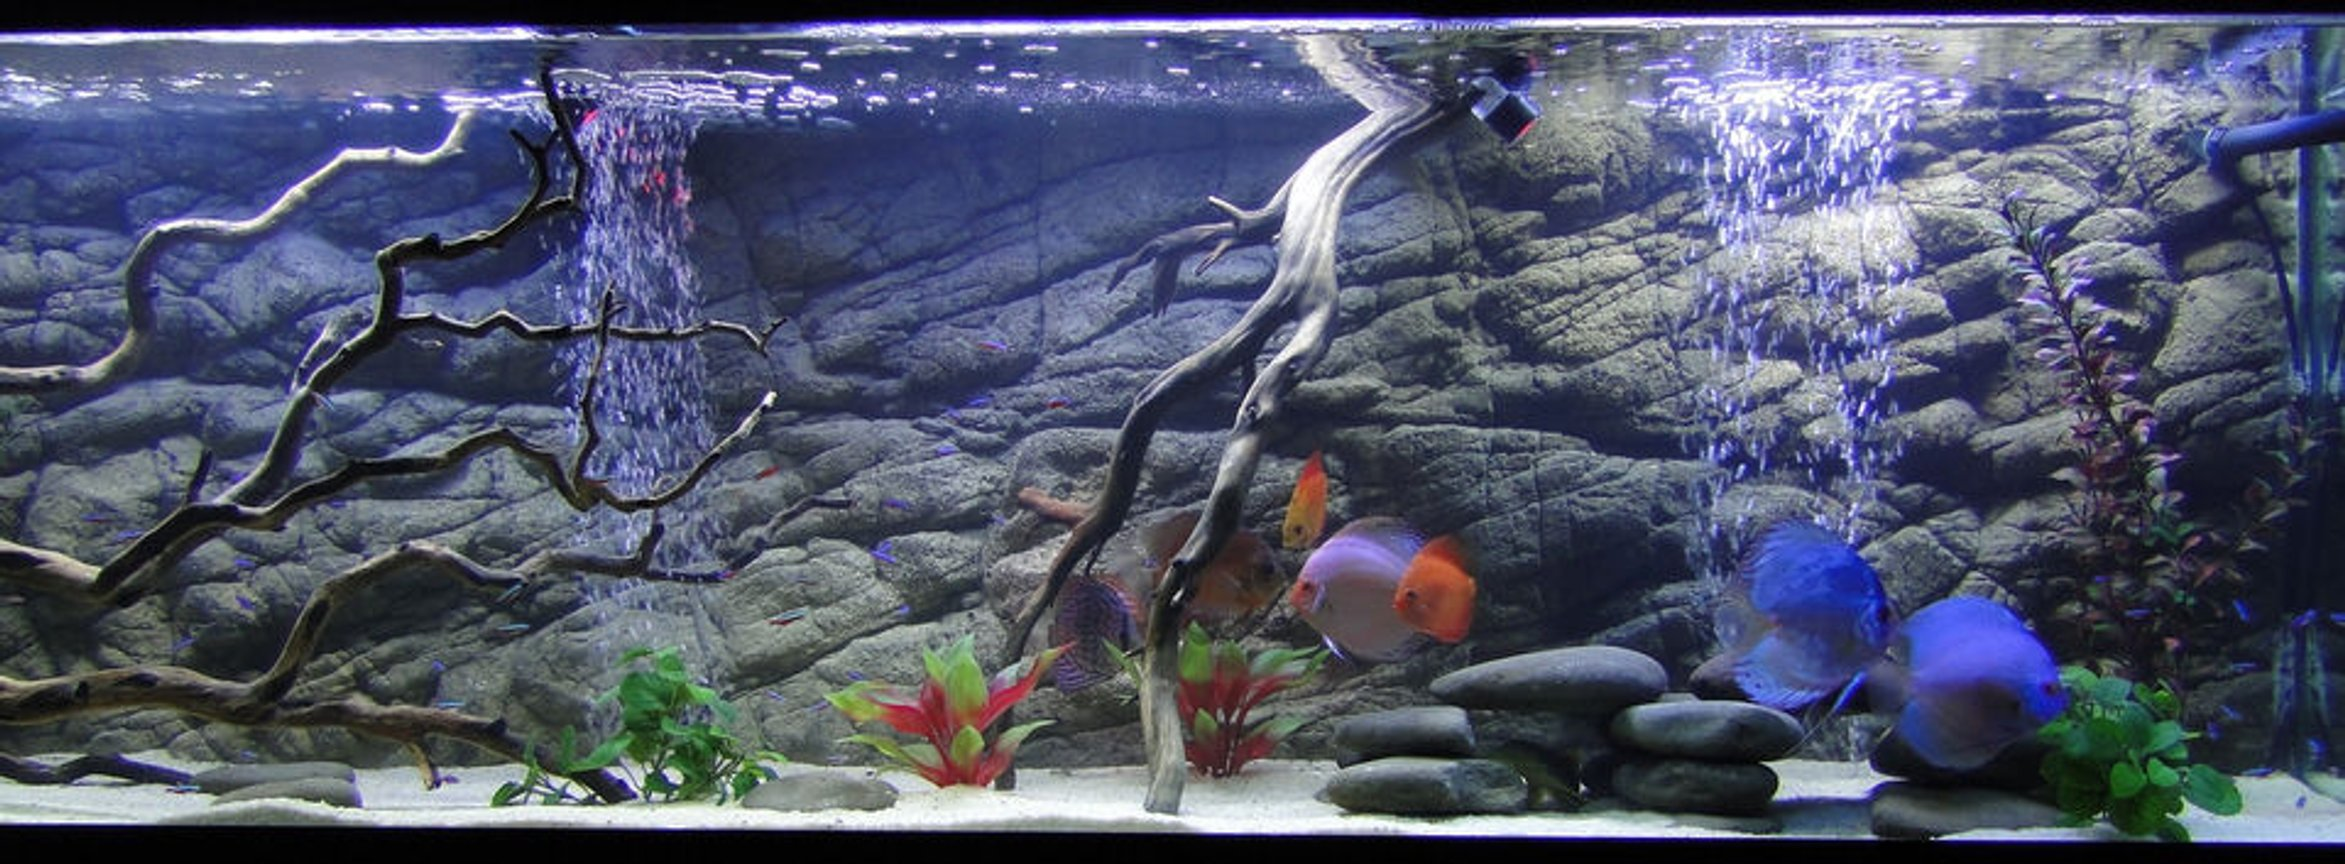 fish tank picture - The fish